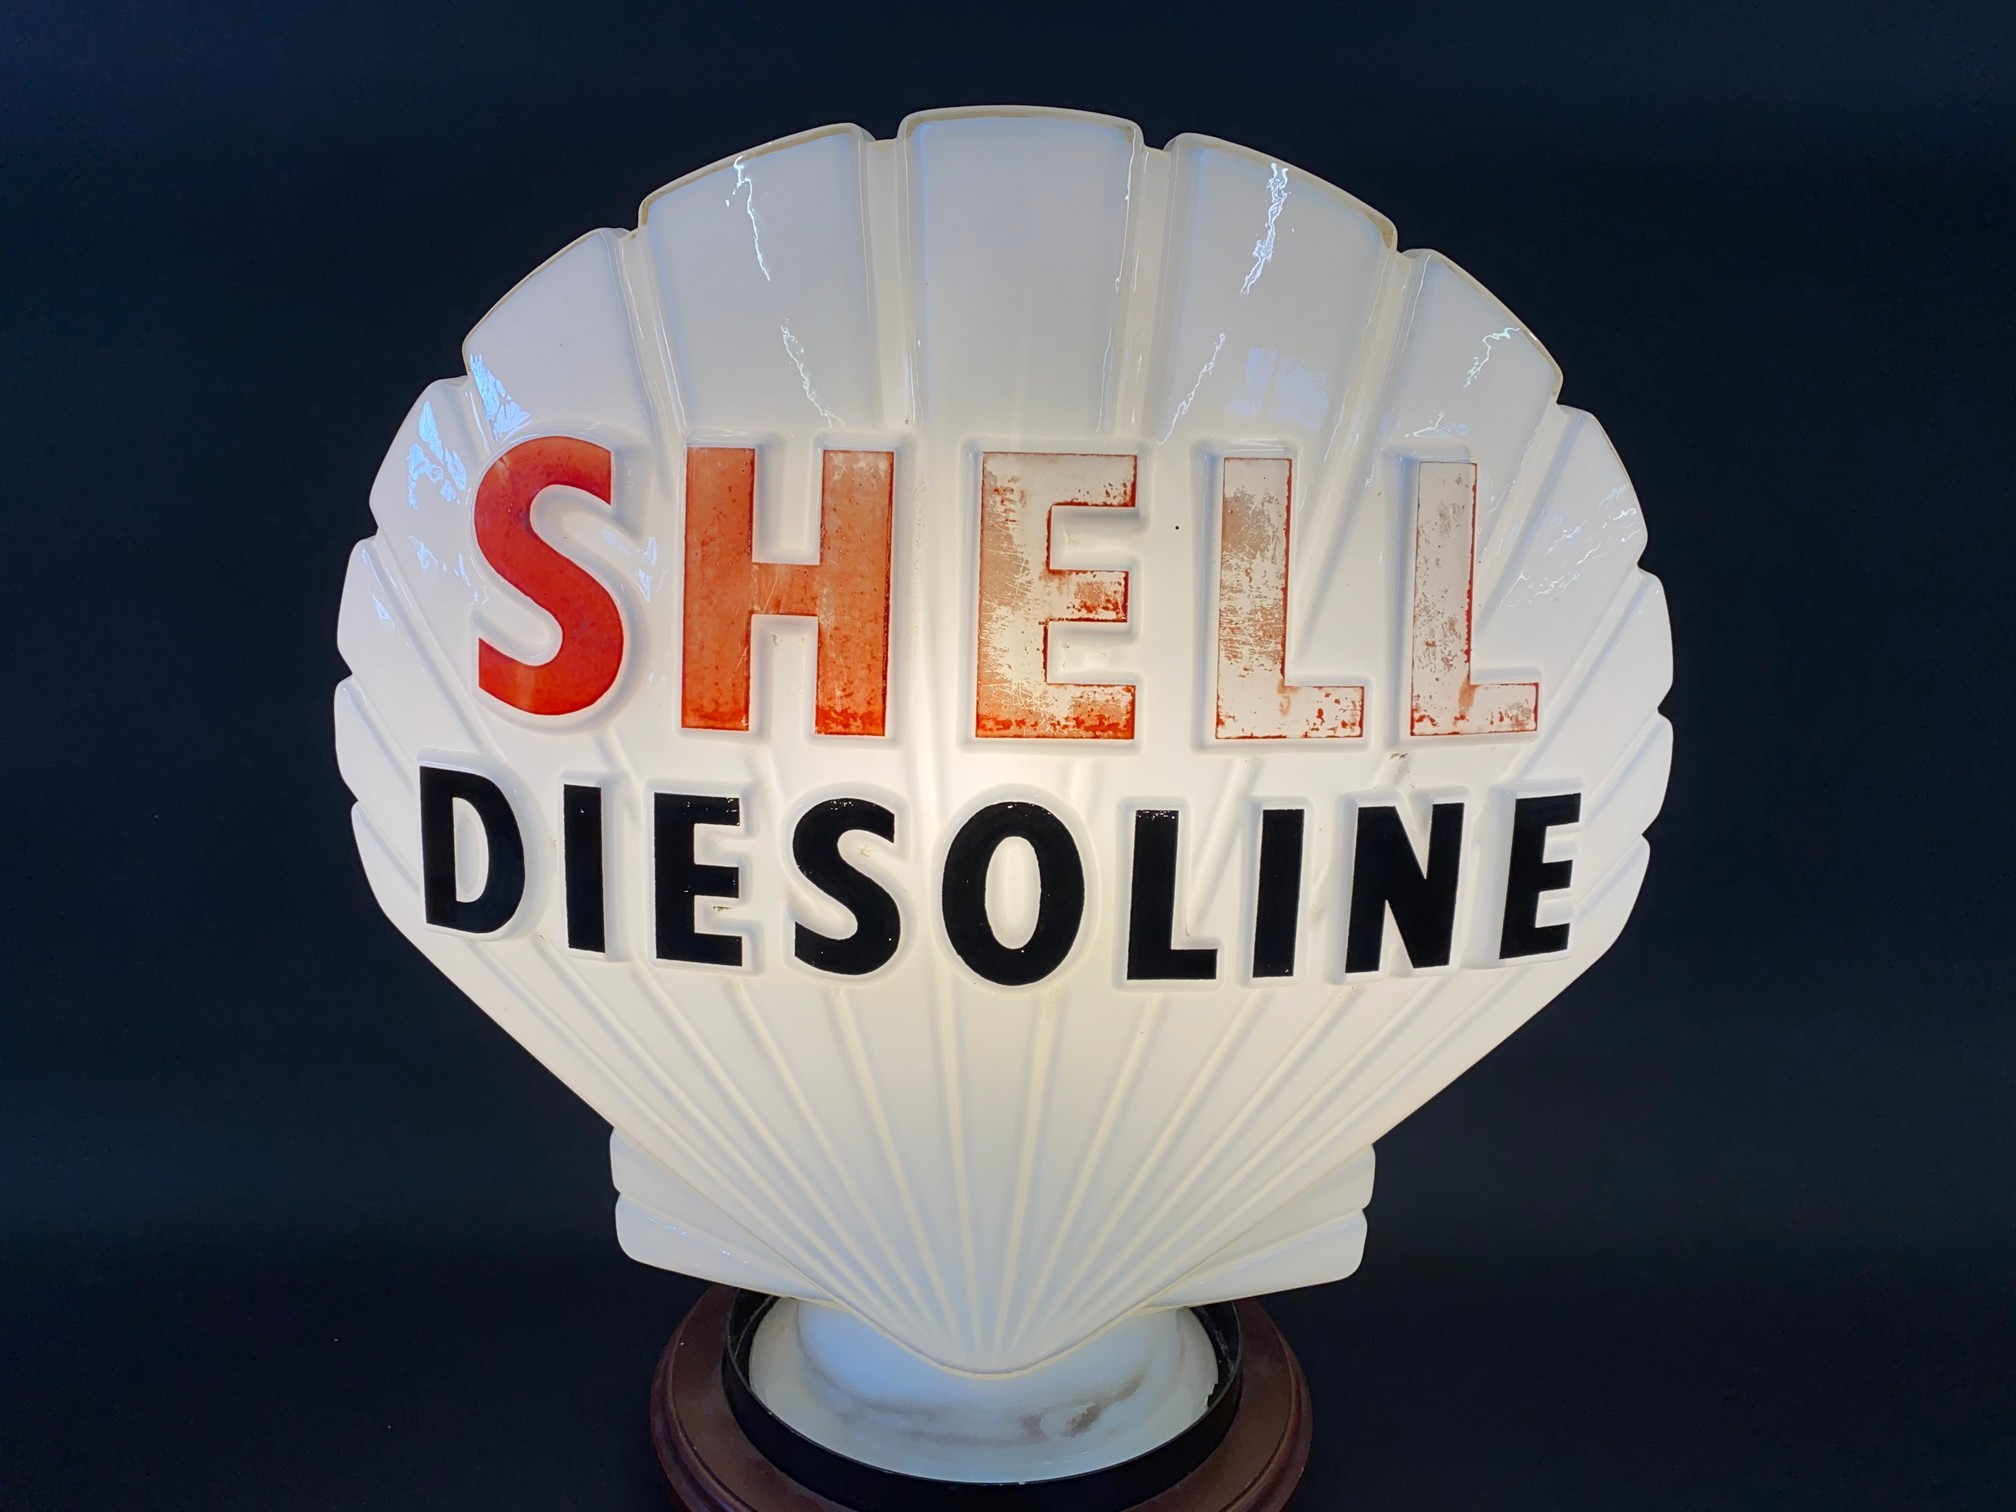 A Shell Diesoline glass petrol pump globe by Hailware, faint stamps underneath, minor nibbles to